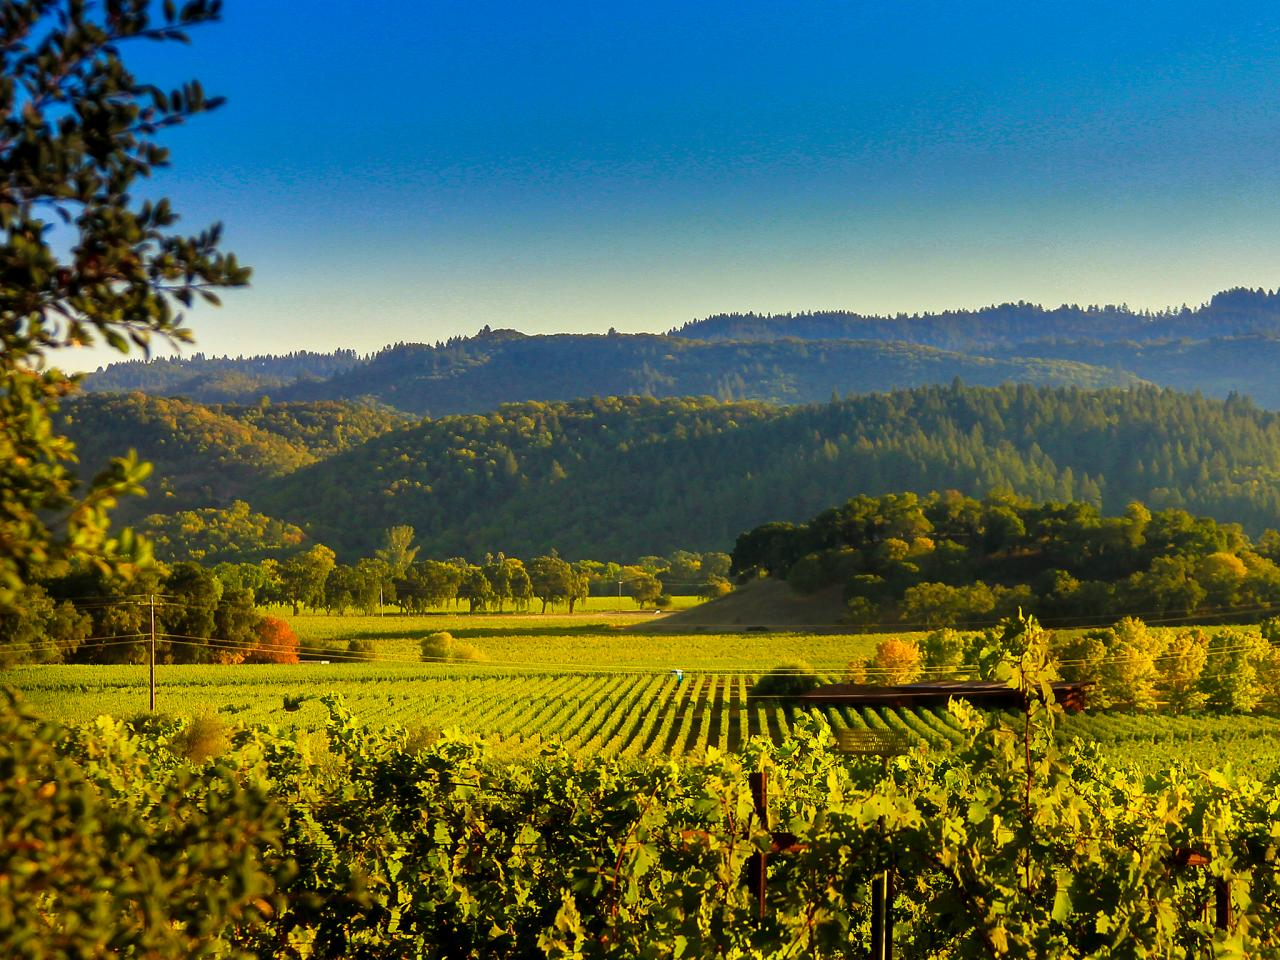 Fall Scenery Hd Wallpaper Where To Play Stay And Taste In Napa Valley Travel Noire